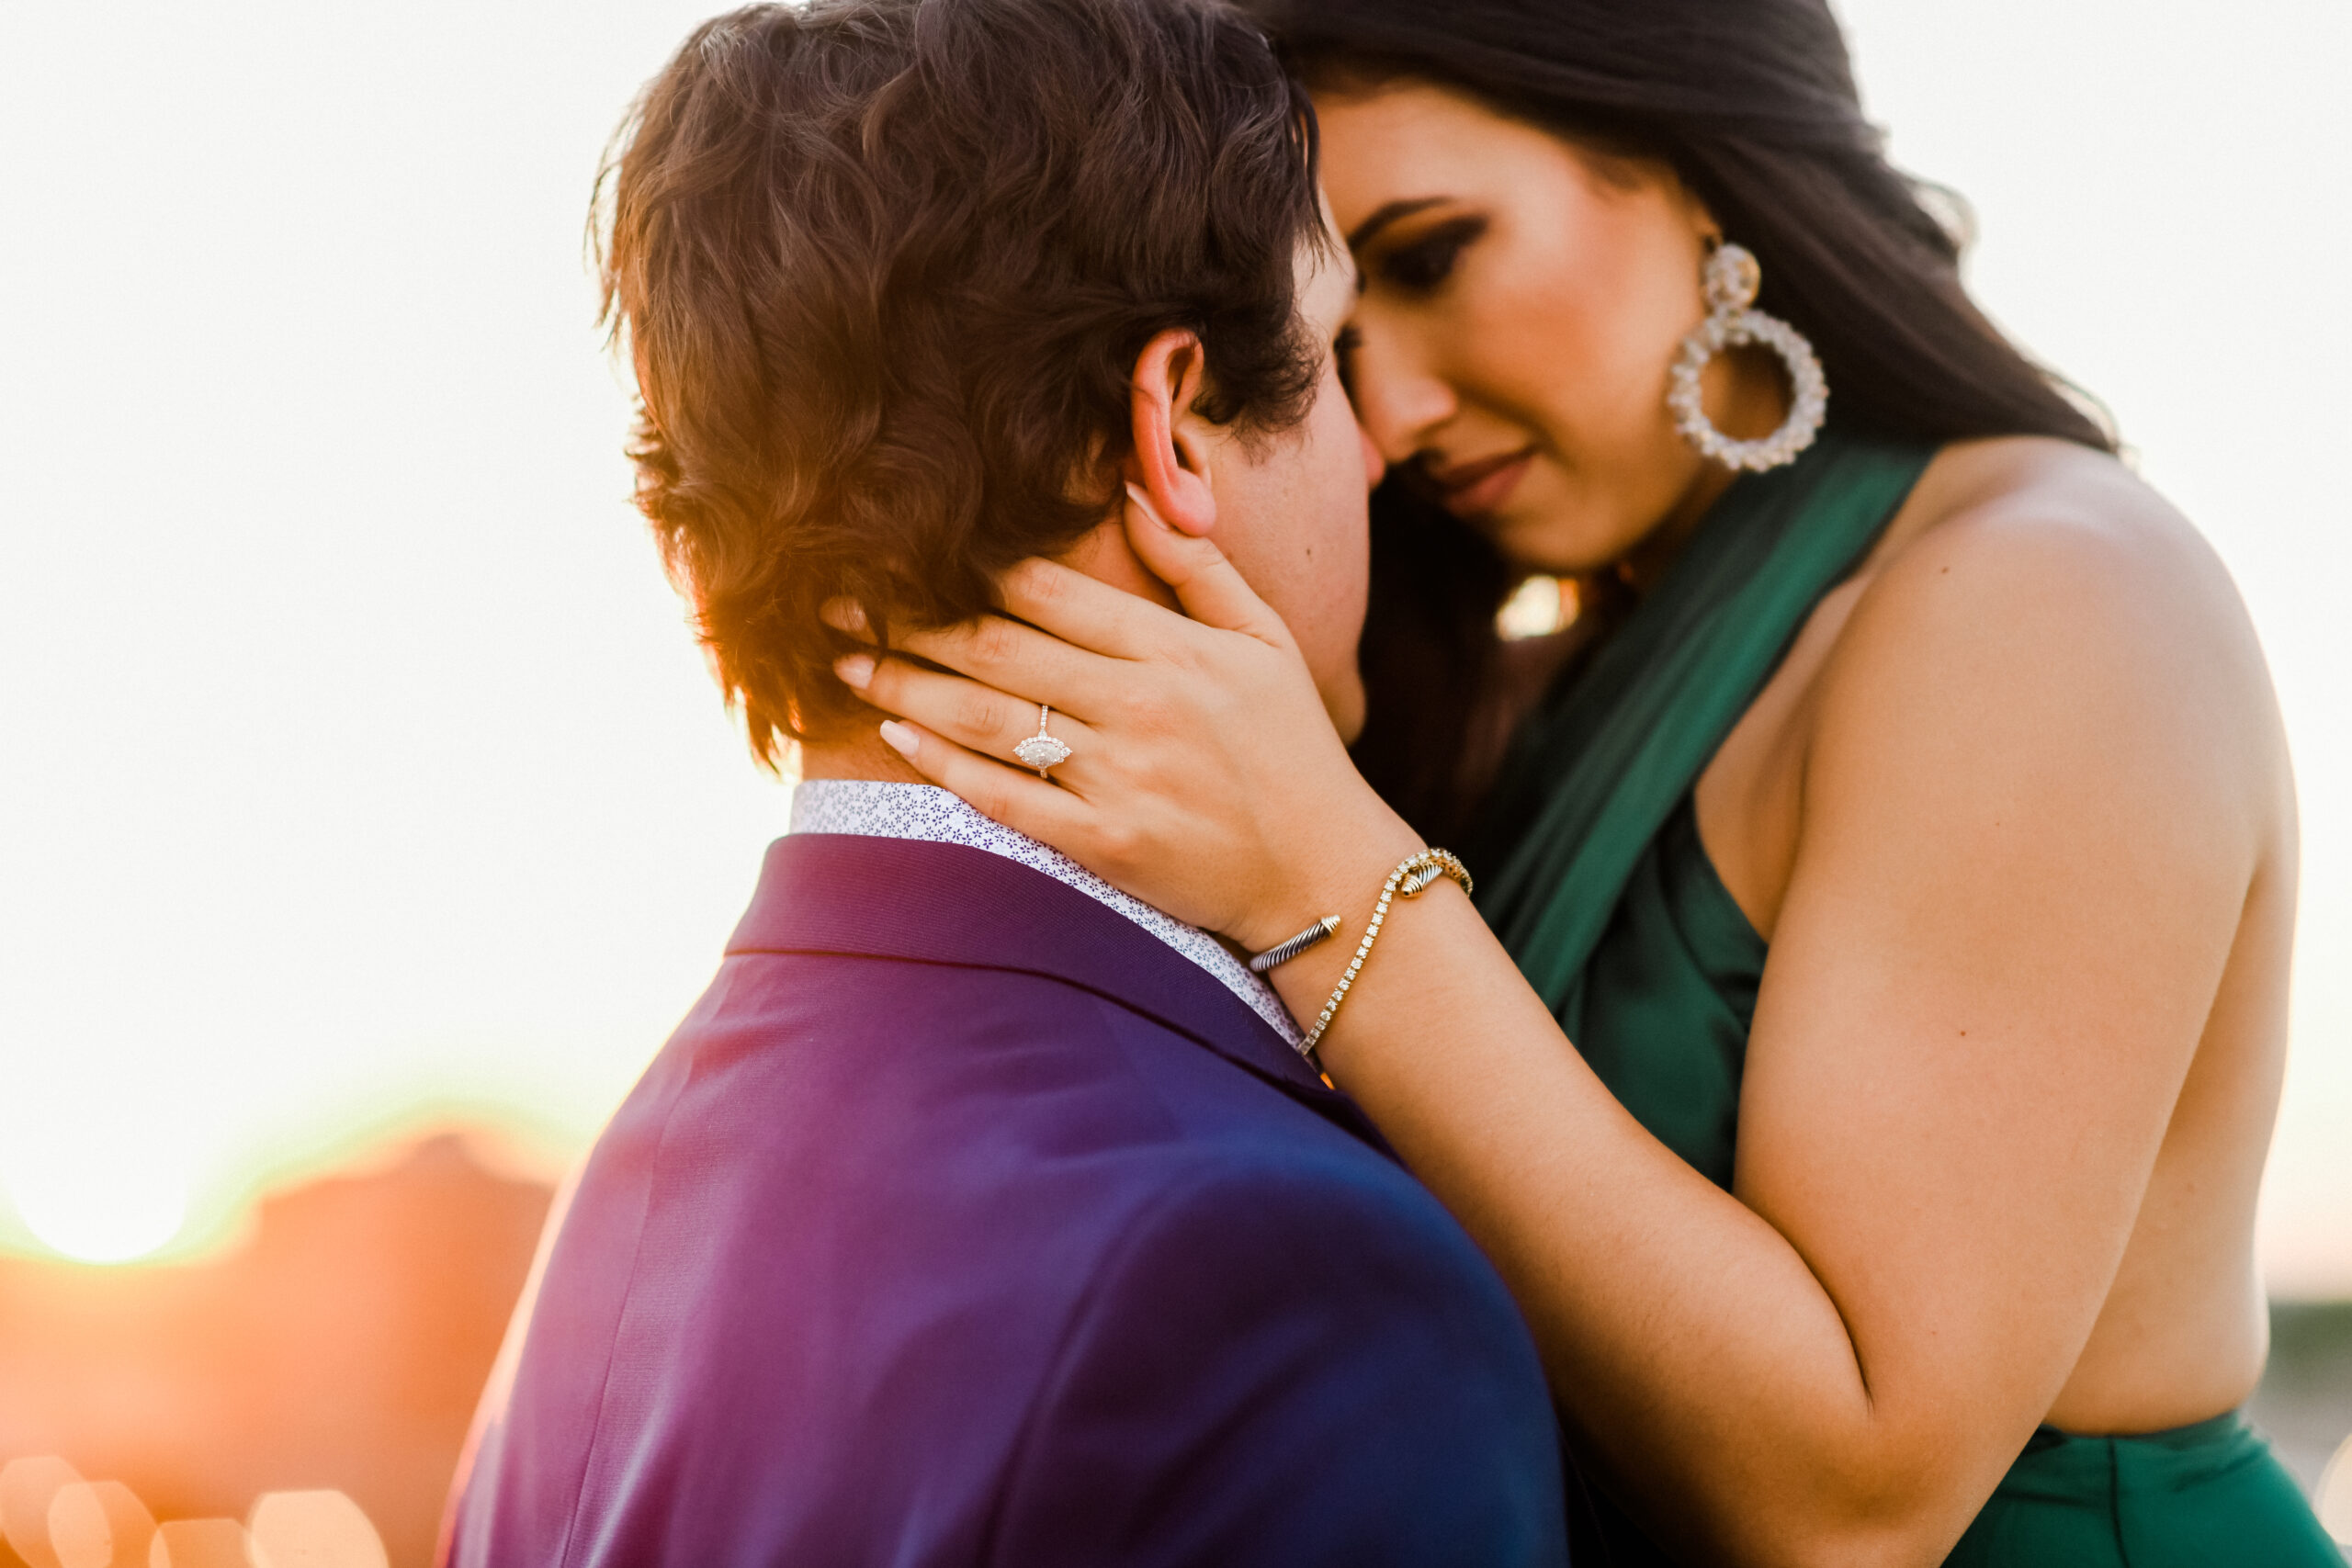 Haley & Rustin's Engagement Session in Historic Downtown Parking Garage with in Bryan, TX